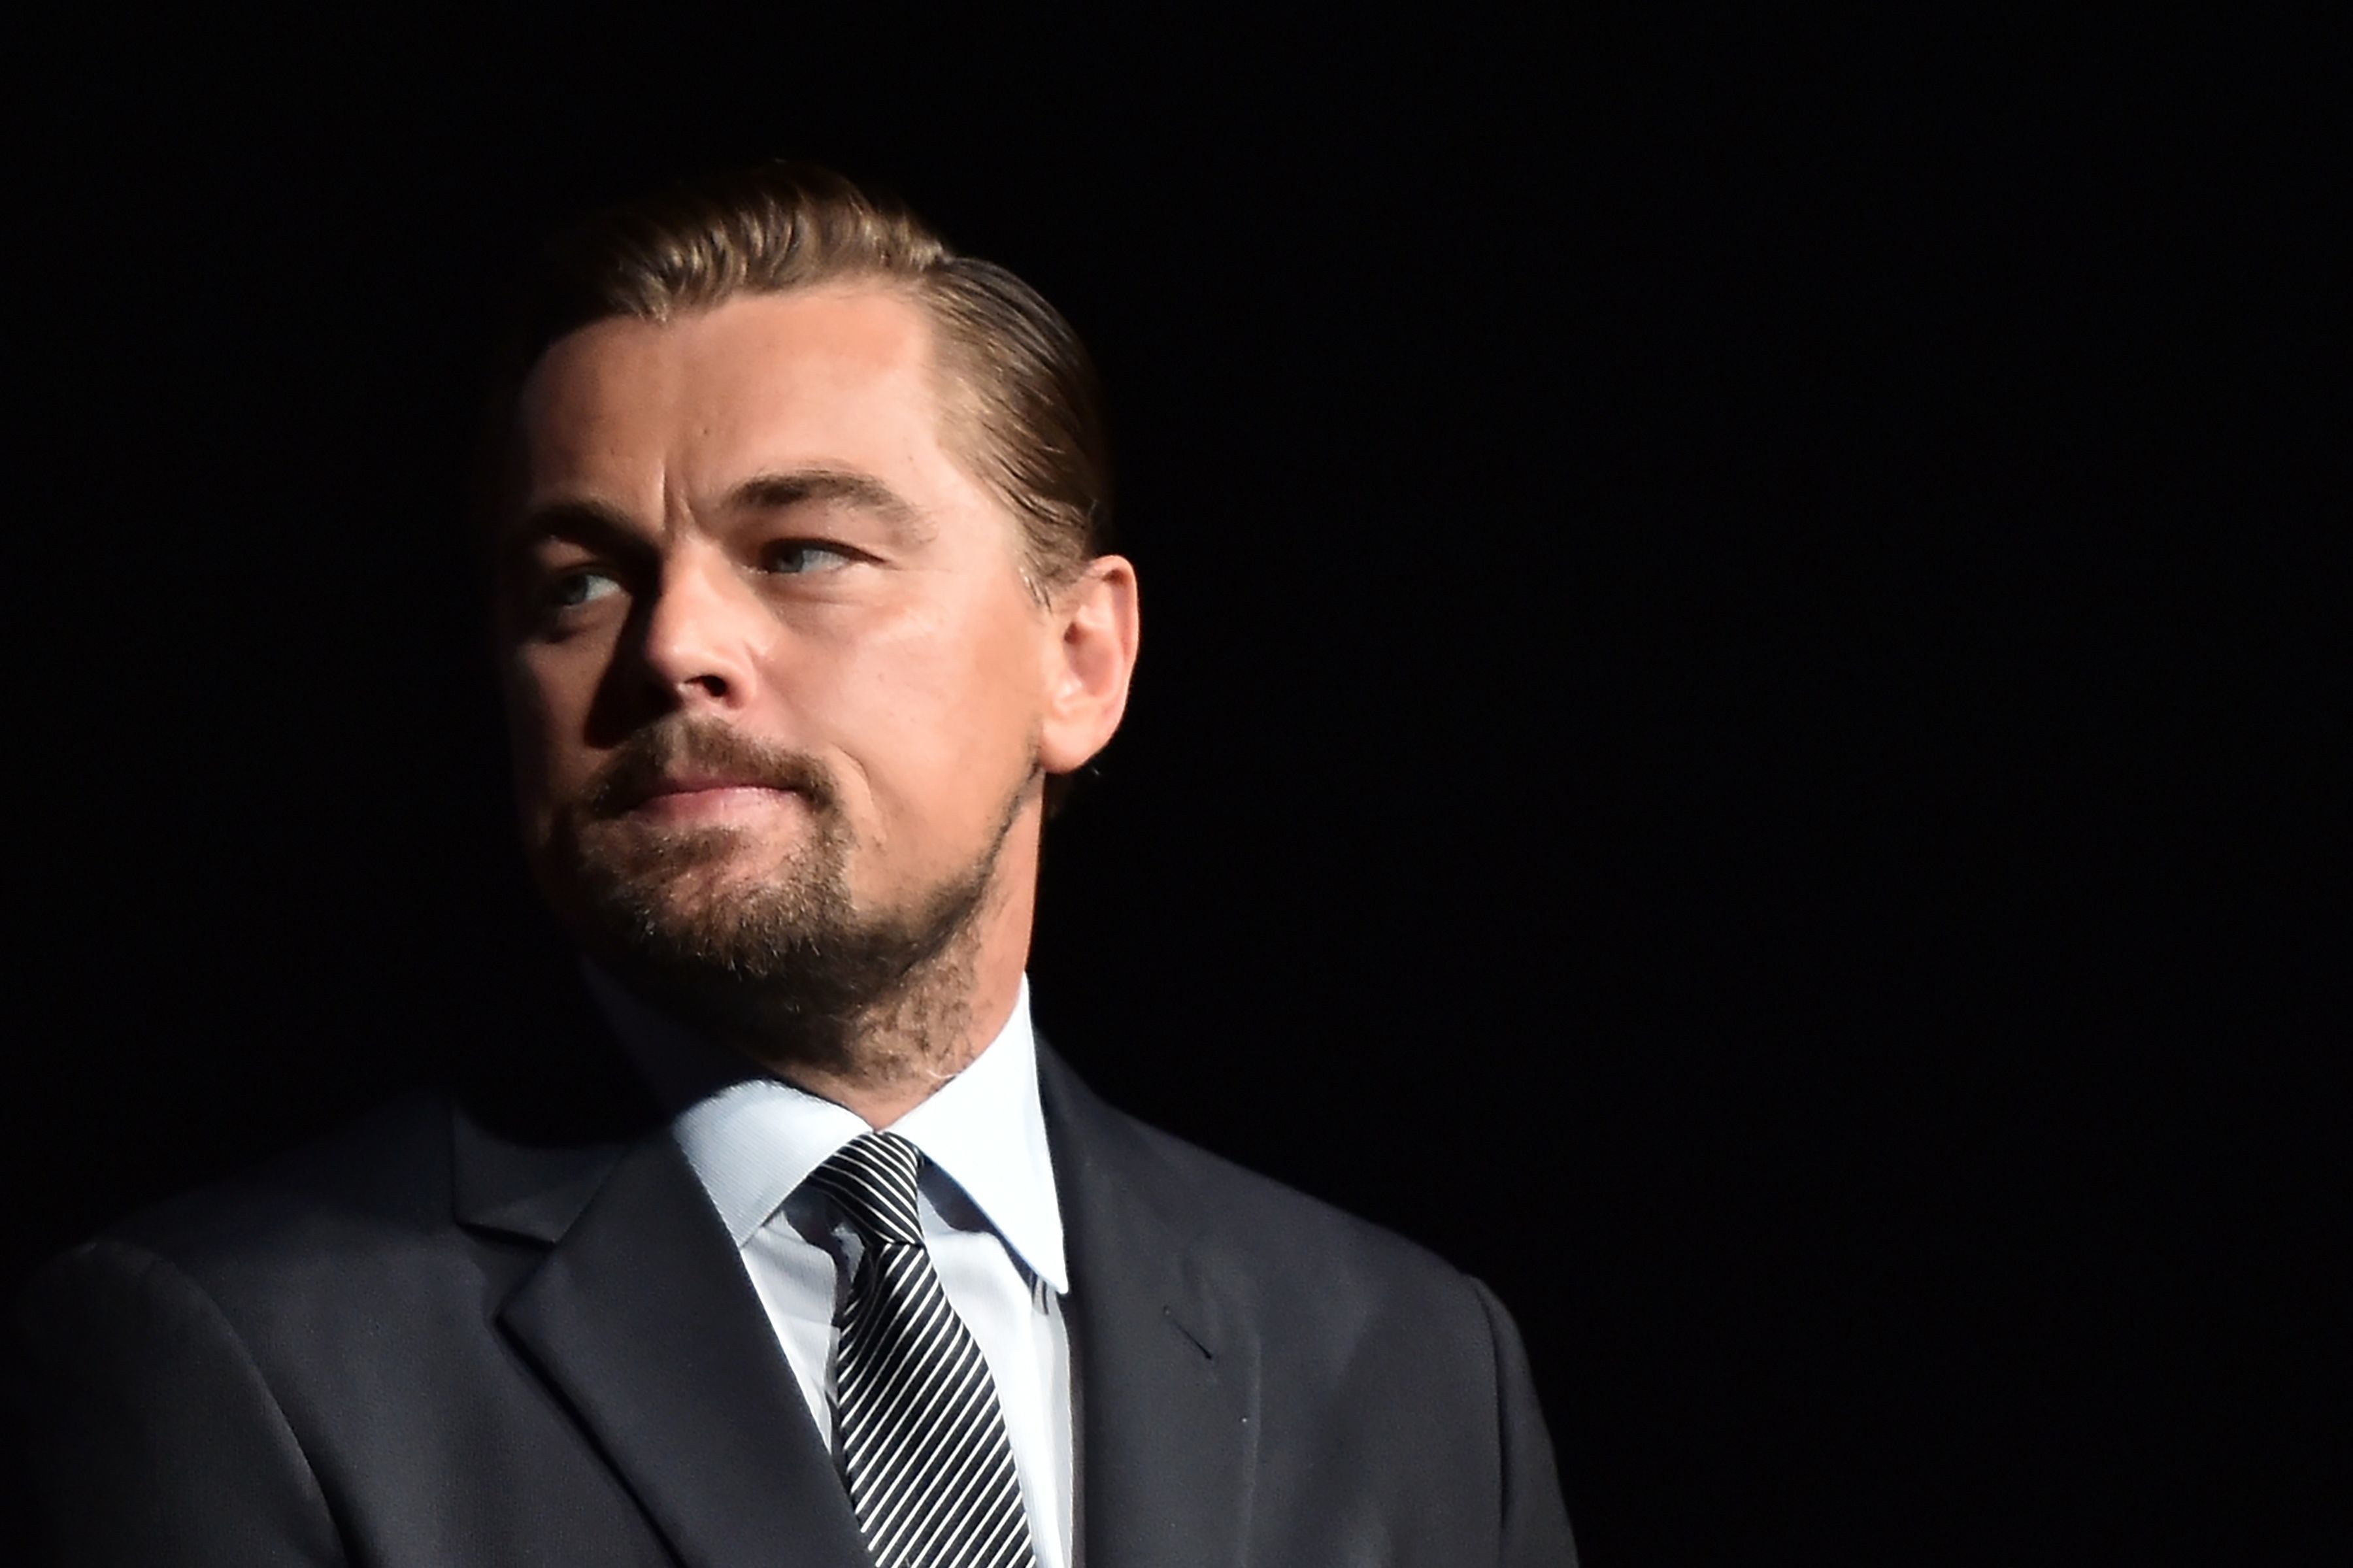 Hurricanes A 'Global Wake-Up Call': DiCaprio Rips Trump Over Climate